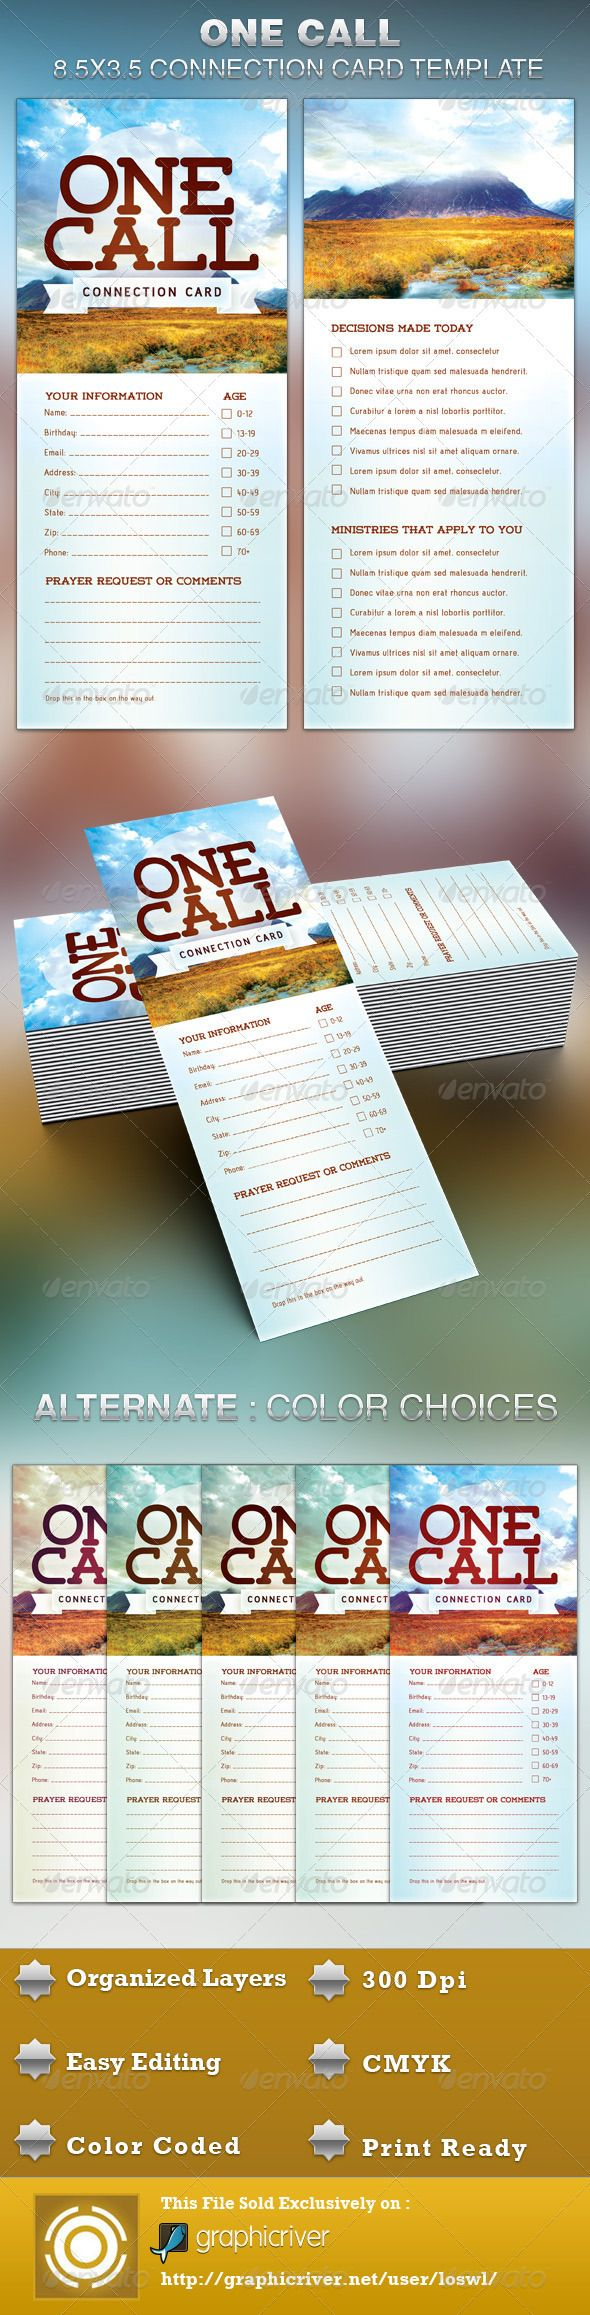 The One Call Church Connection Card Template is great for any Churches. It can be used to connect with your congregation, for decision card, attendance purposes or for surveys, etc. The layered Photoshop files are color coded and organized in folders for …